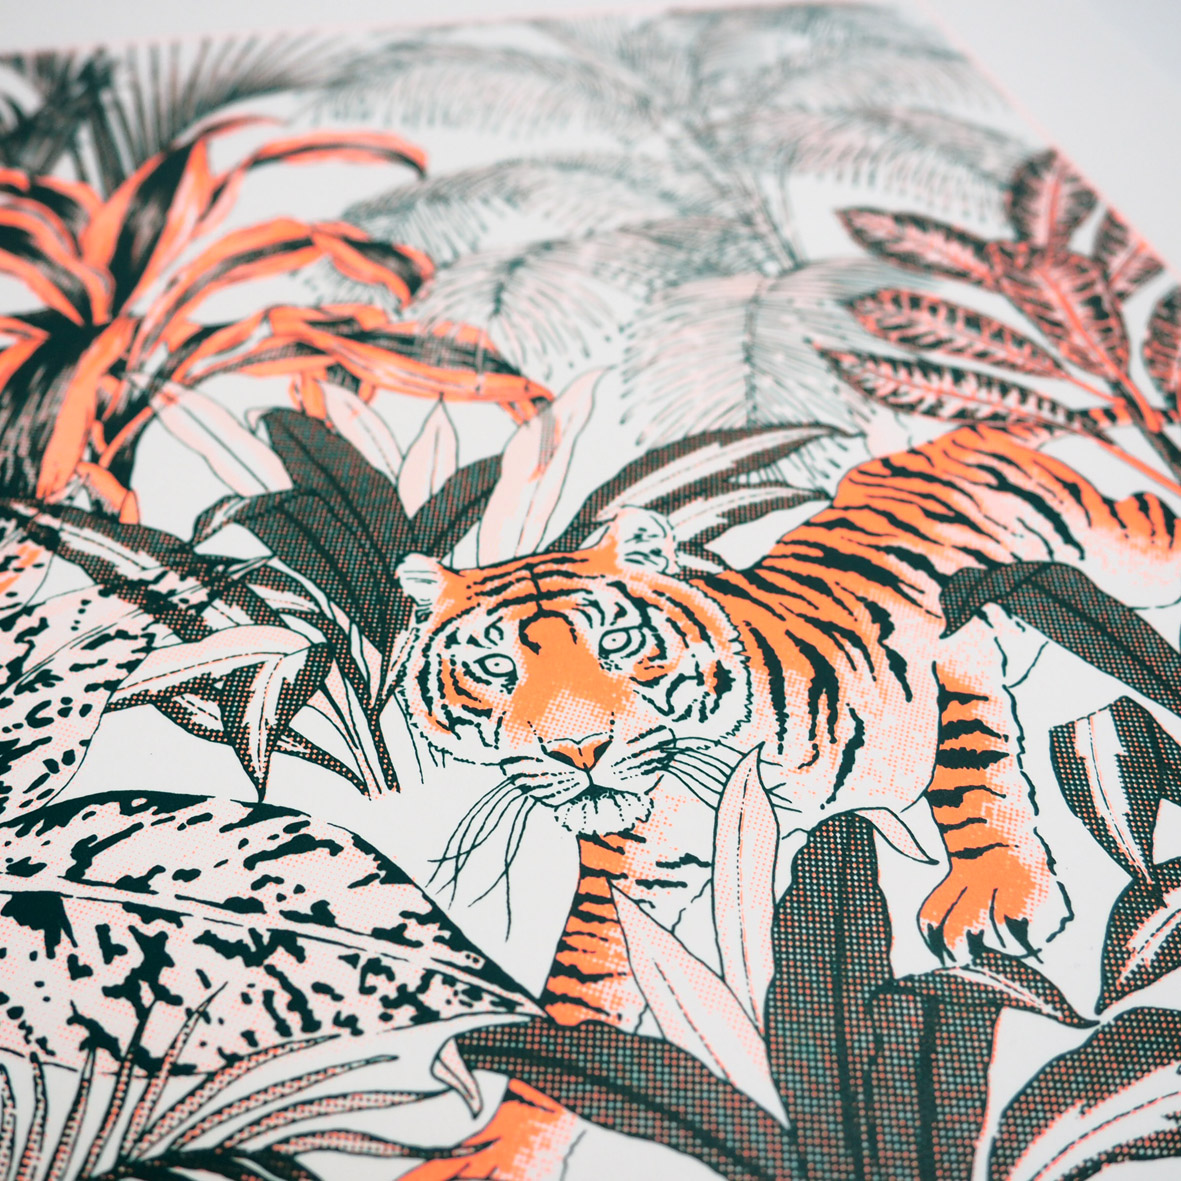 Sumatran-Tiger-Jungle-Screen-Print-5-sm.jpg